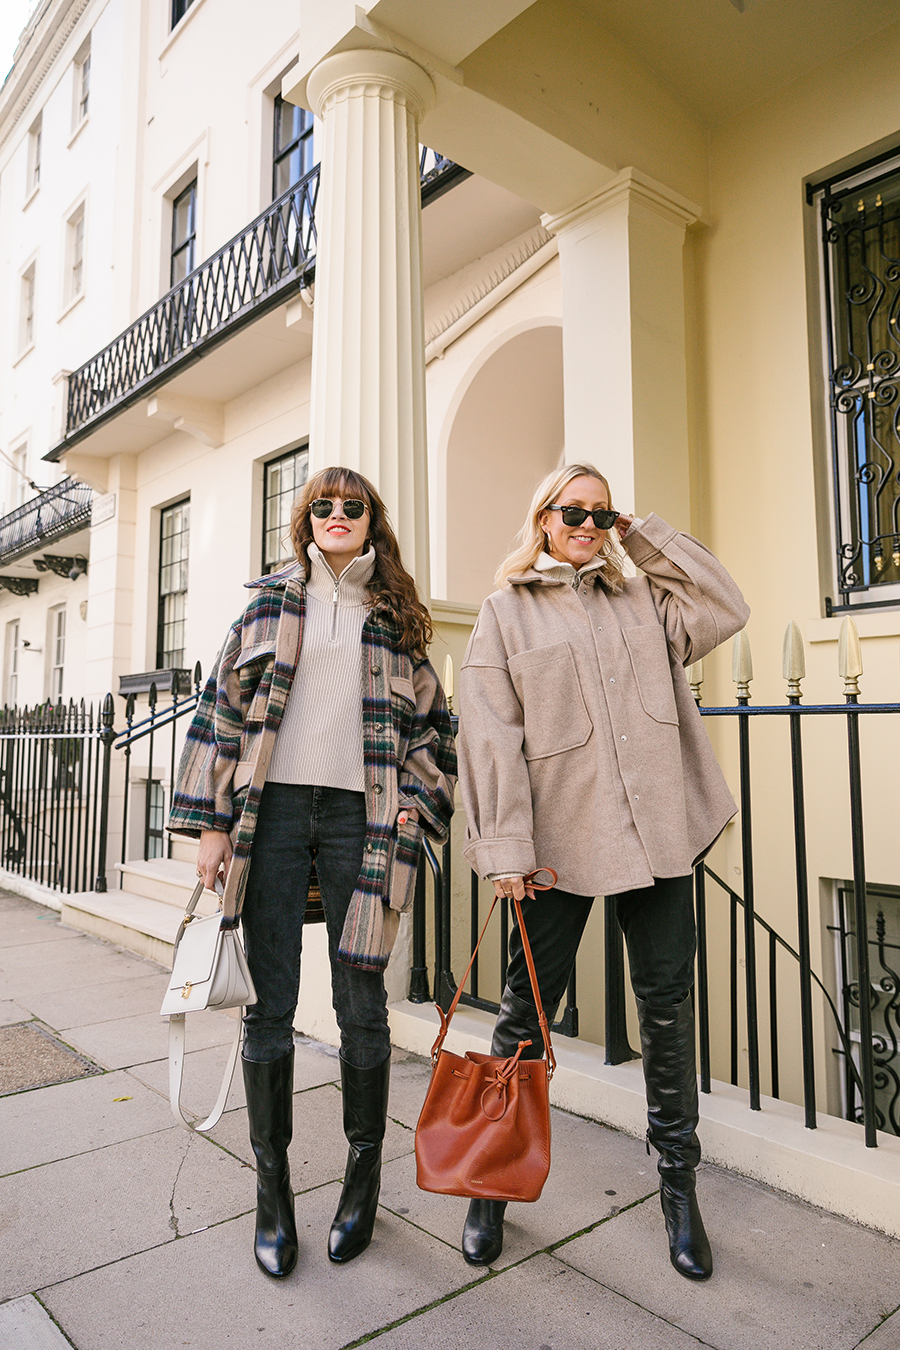 Belle & bunty london bloggers influencers Shackets coat edit